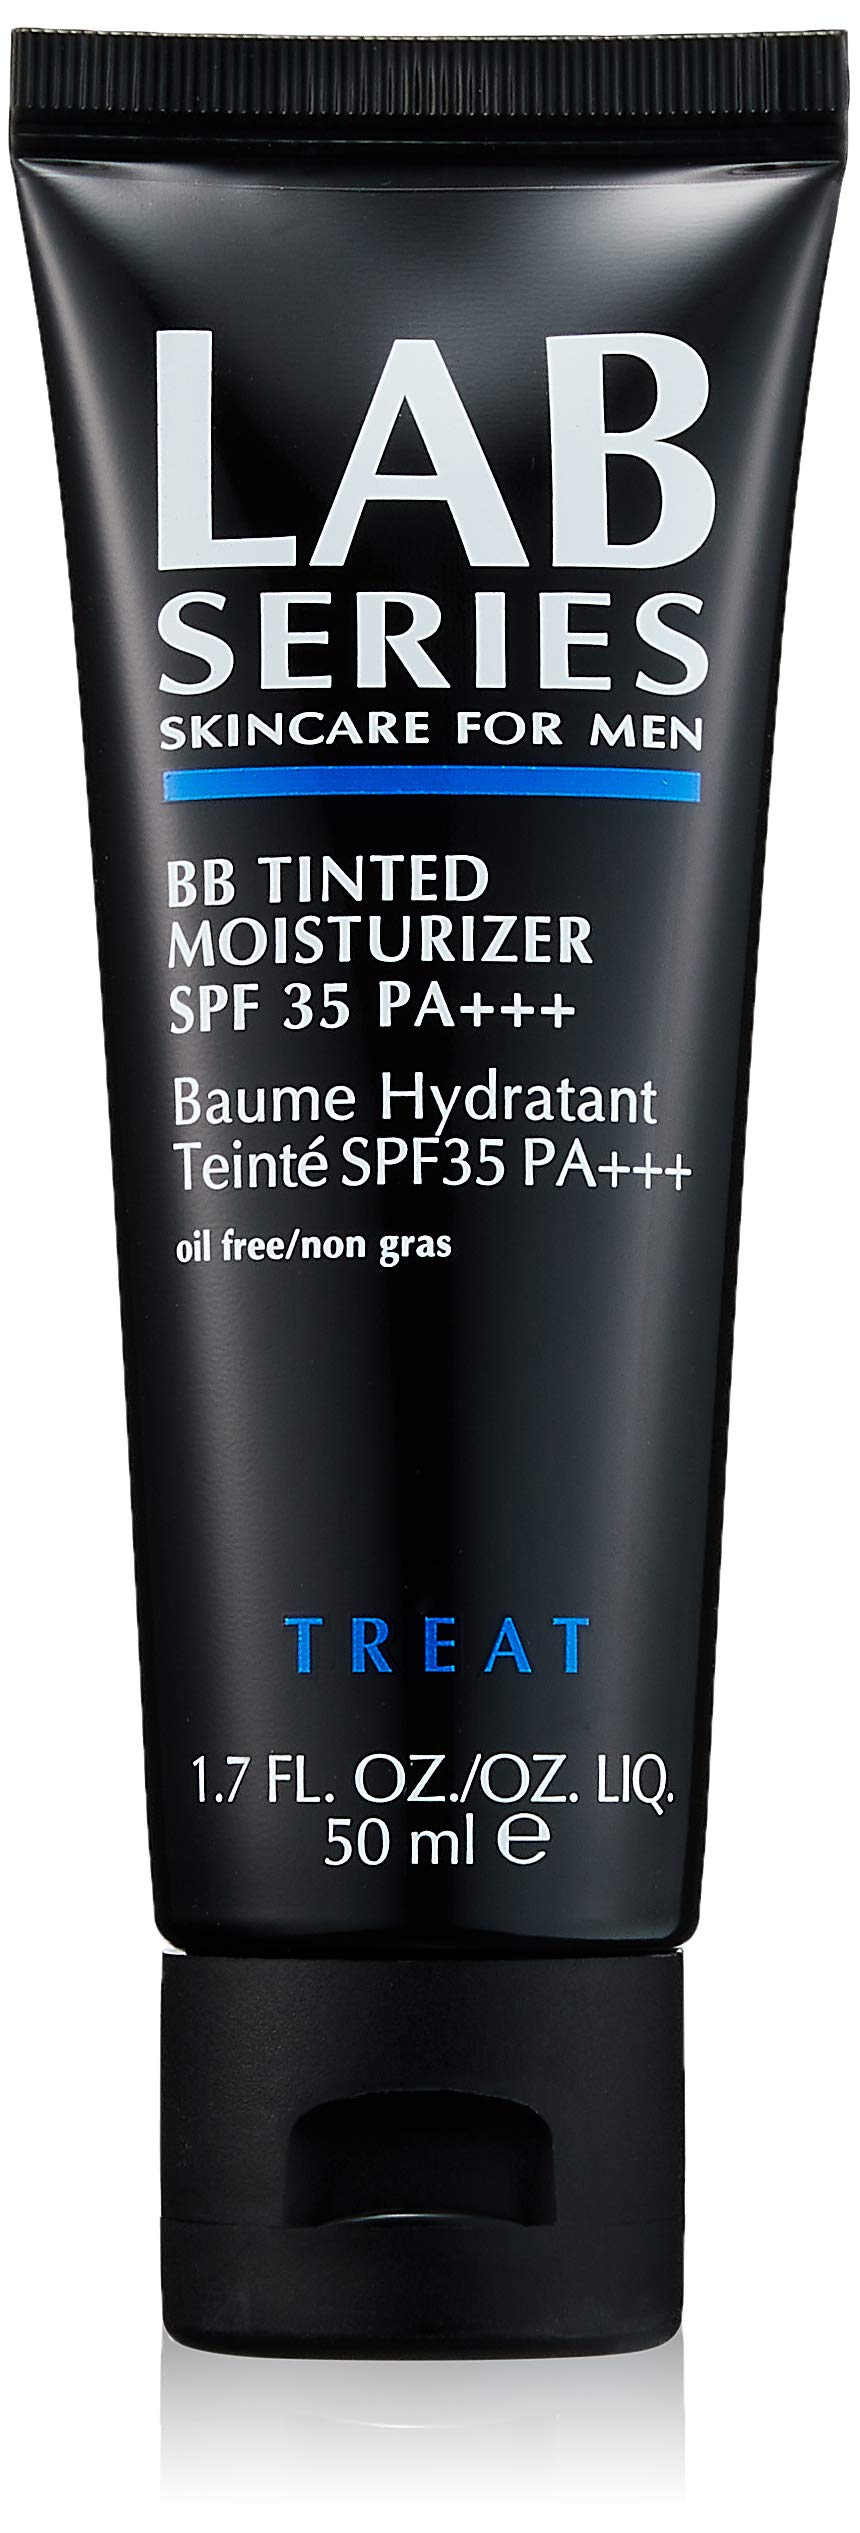 Lab Series SPF 35 BB Tinted Moisturizer Broad Spectrum for Men, 1.7 Ounce by Lab Series